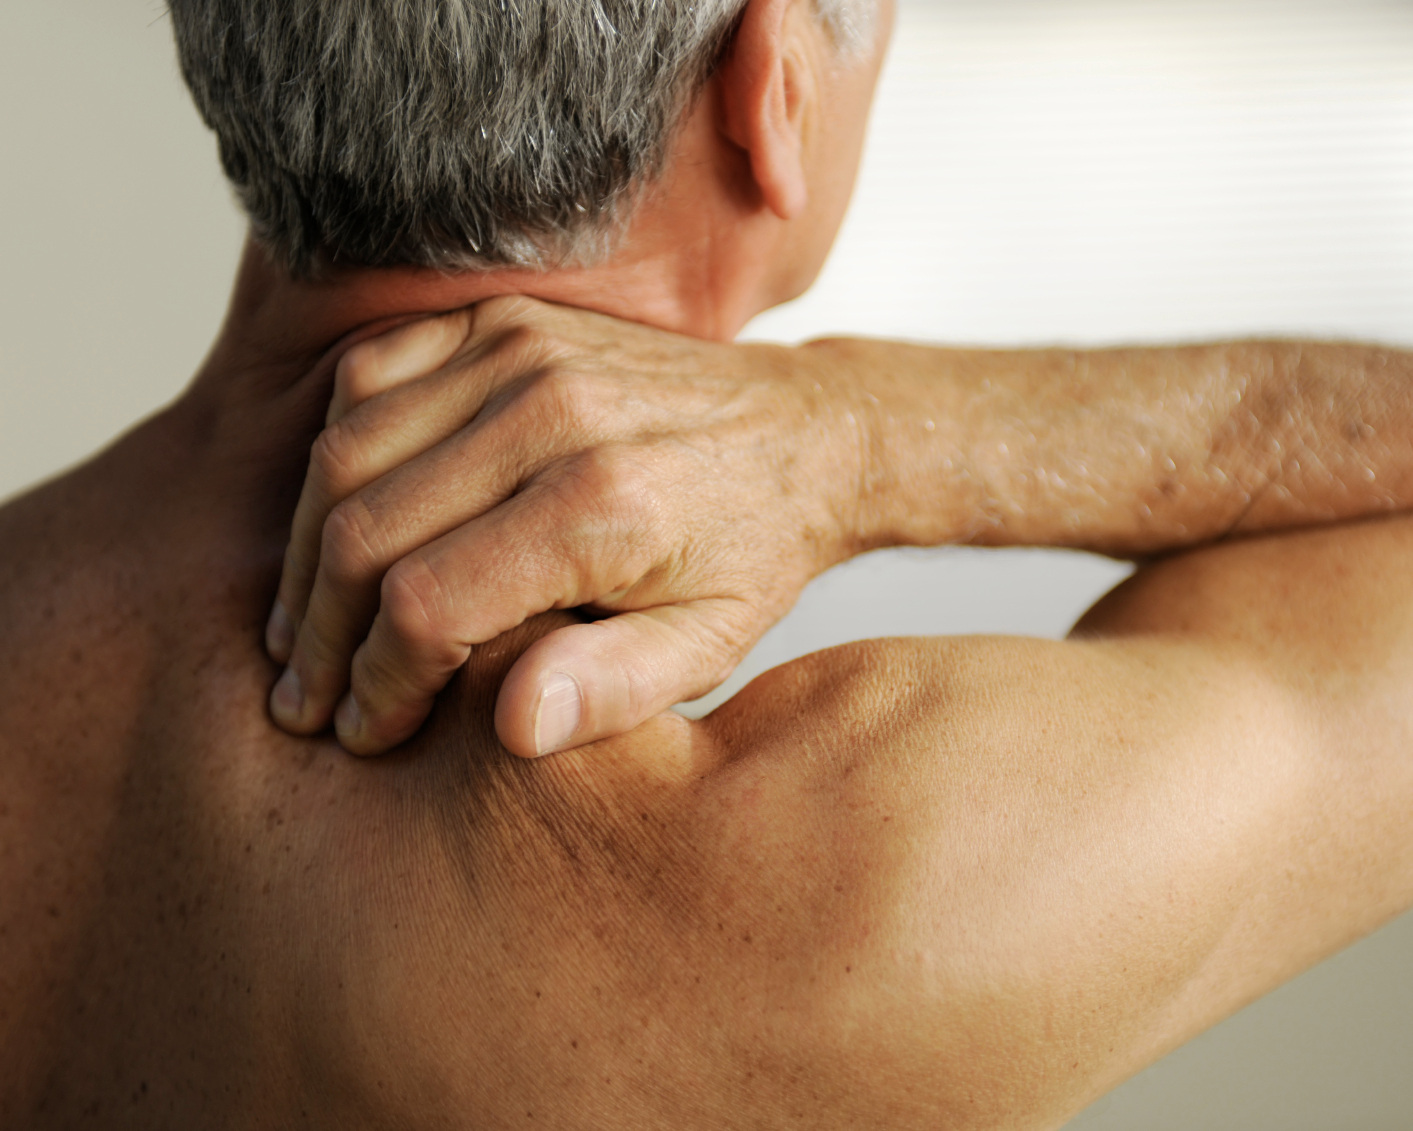 CHRONIC PAIN & SPORTS INJURY - FROZEN SHOULDERSTRAINS & SPRAINSNECK & BACK PAINMIGRAINES & TENSION HEADACHEINFLAMMATORY JOINT PAINFIBROMYALGIATENNIS ELBOW & GOLFERS ELBOWOSTEOARTHRITIS - KNEE, HANDS & SHOULDER PAIN